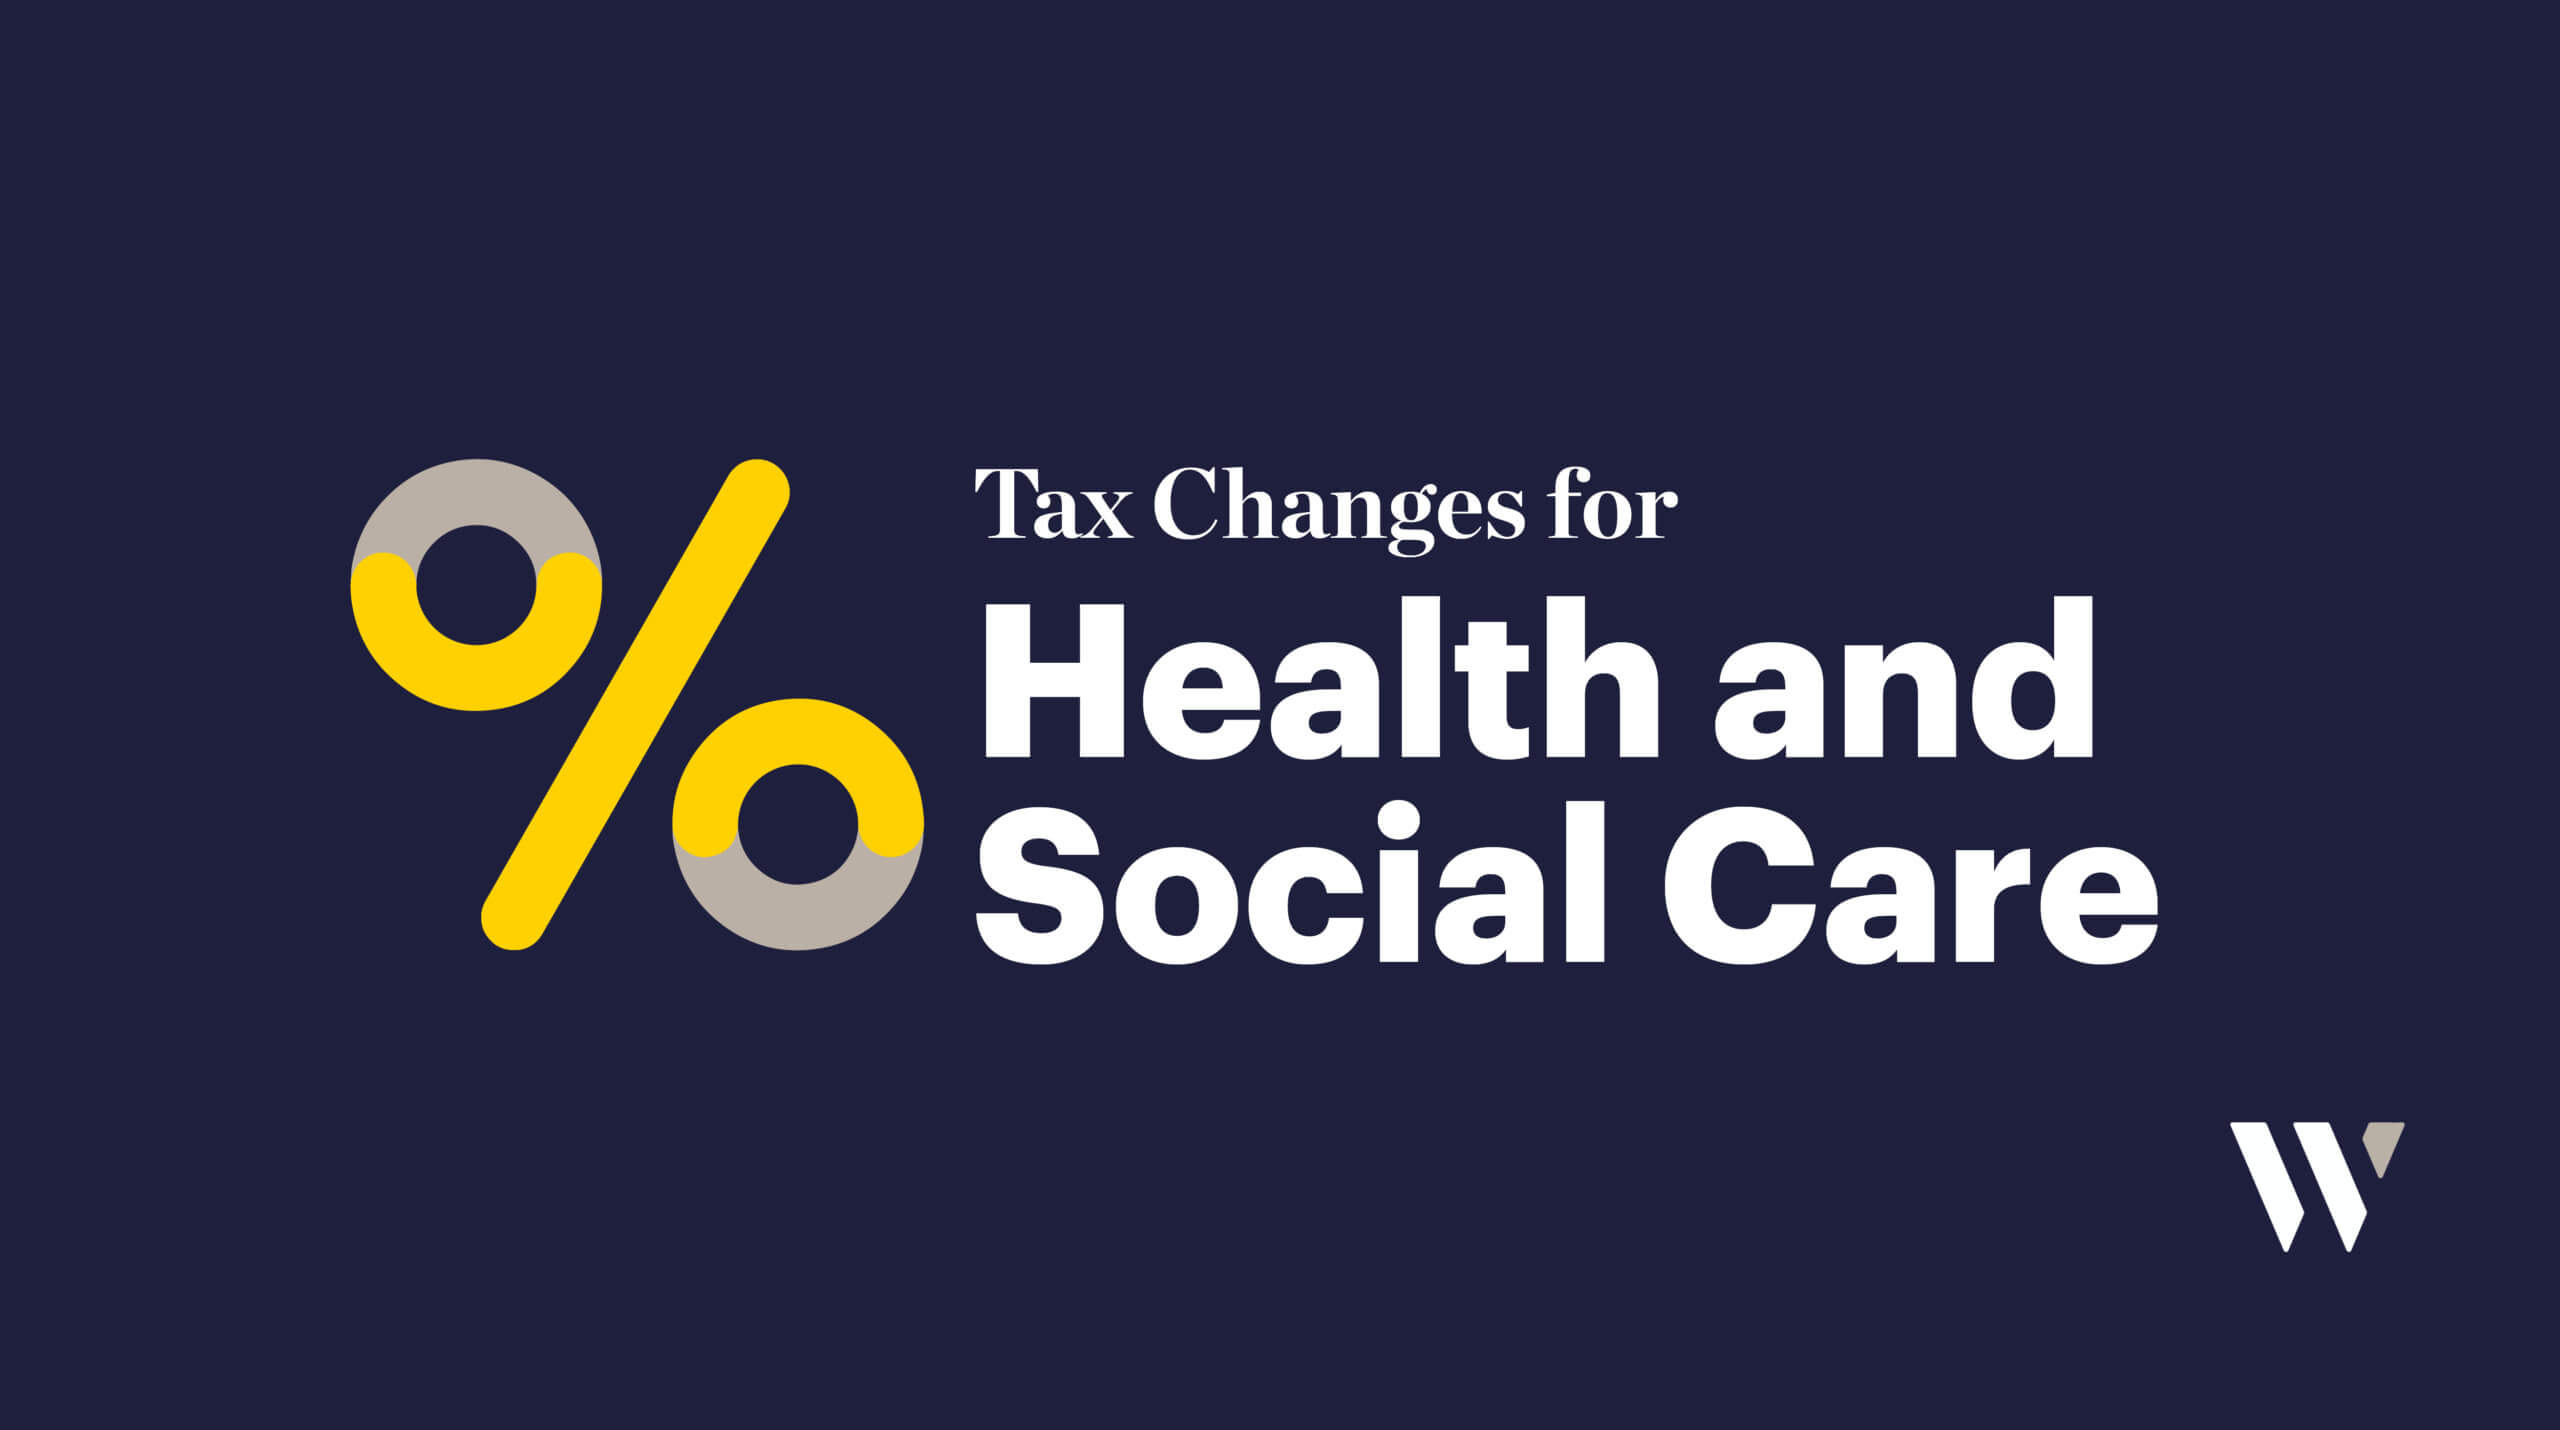 Tax changes for Health and Social Care Reform